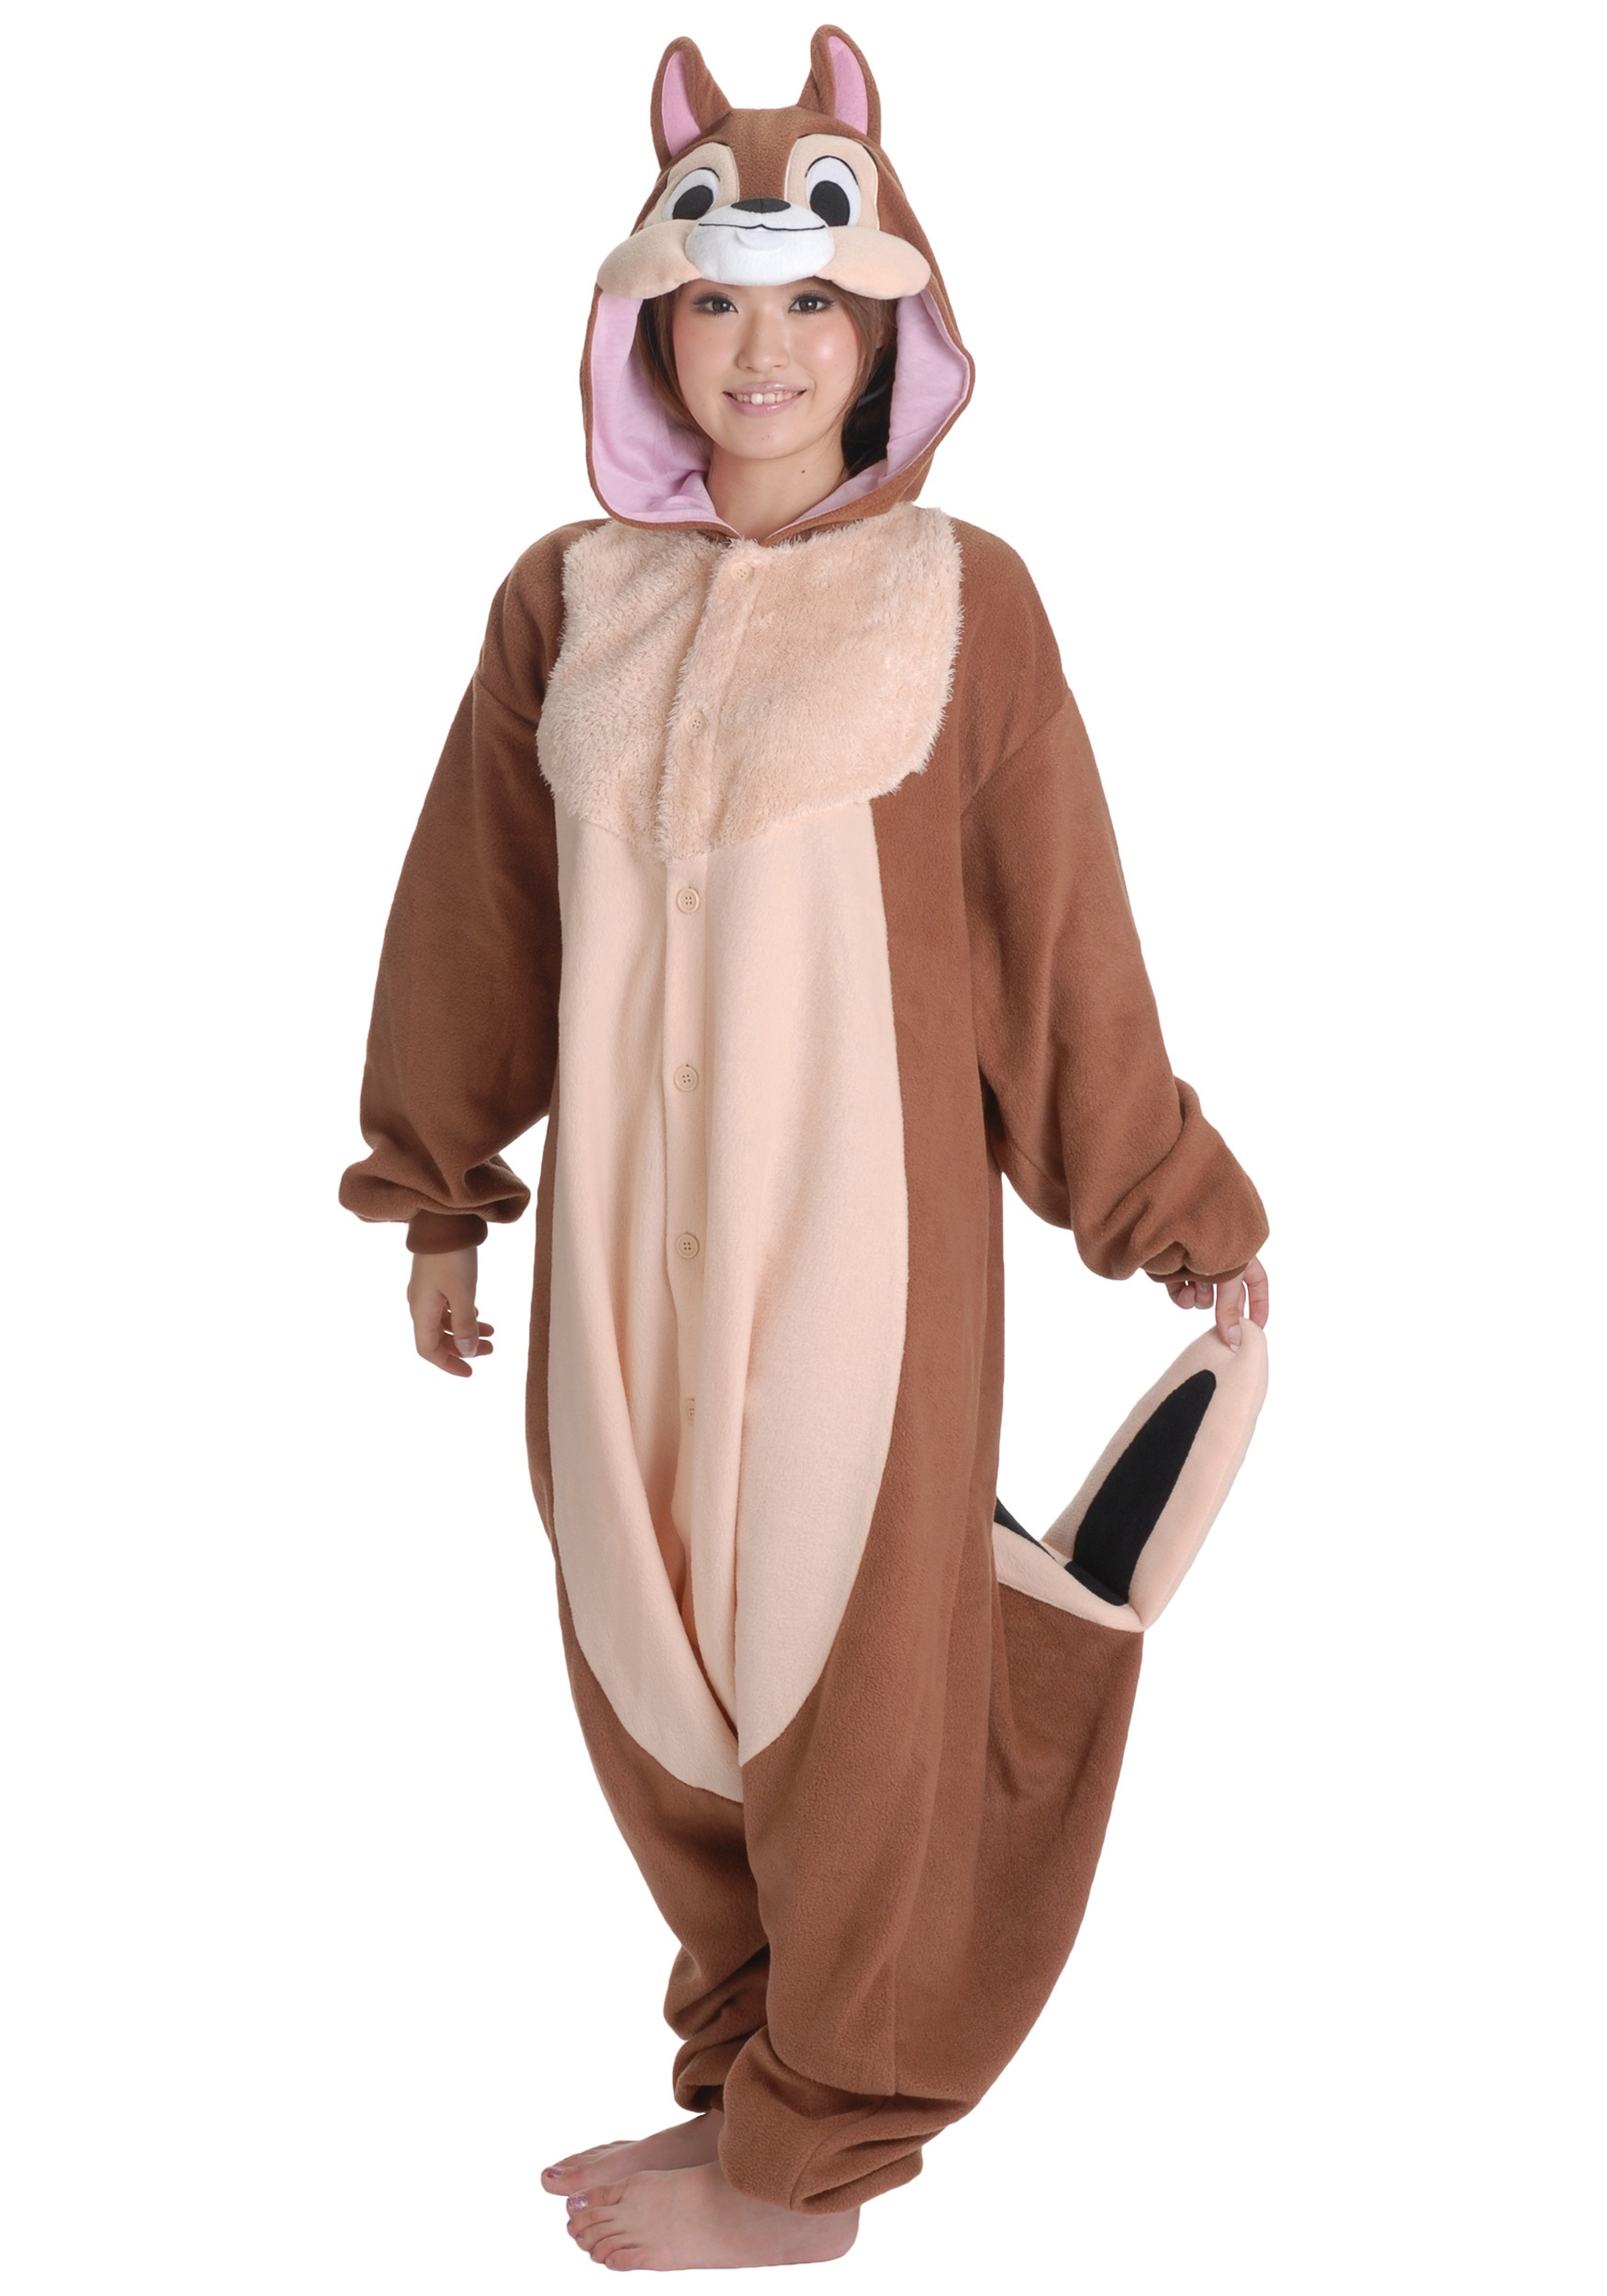 Adult Onesie Costume Pajamas. Party & Occasions. Halloween. All Halloween Costumes. Adult Halloween Costumes. Women's Halloween Costumes. Adult Onesie Costume Pajamas. Showing 40 of results that match your query. Search Product Result. Product - SILVER LILLY Unisex Adult Plush Animal Cosplay Costume Pajamas (Cow) Product Image.